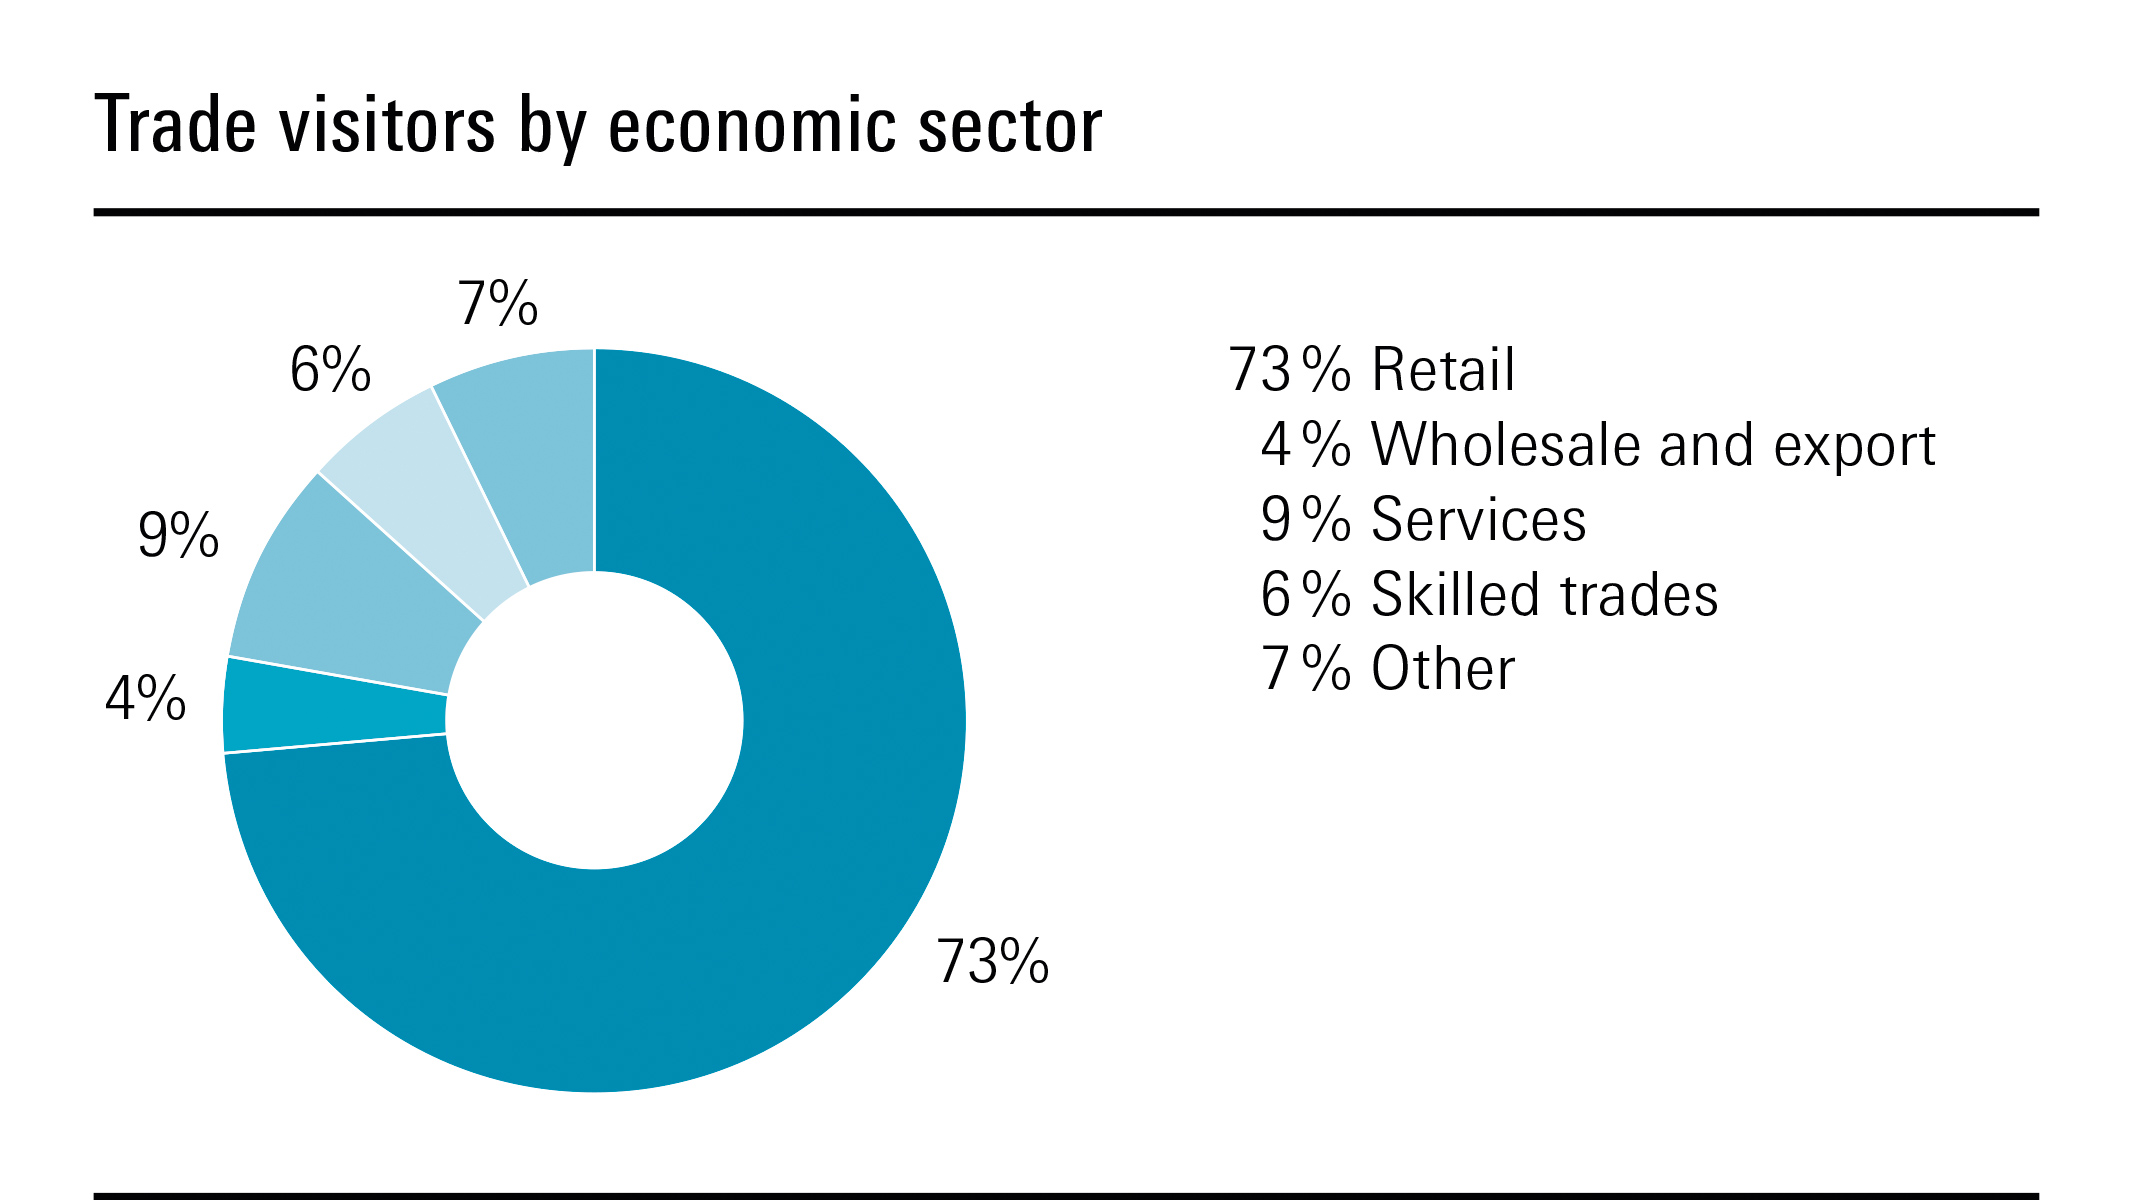 Trade visitor by economic sector